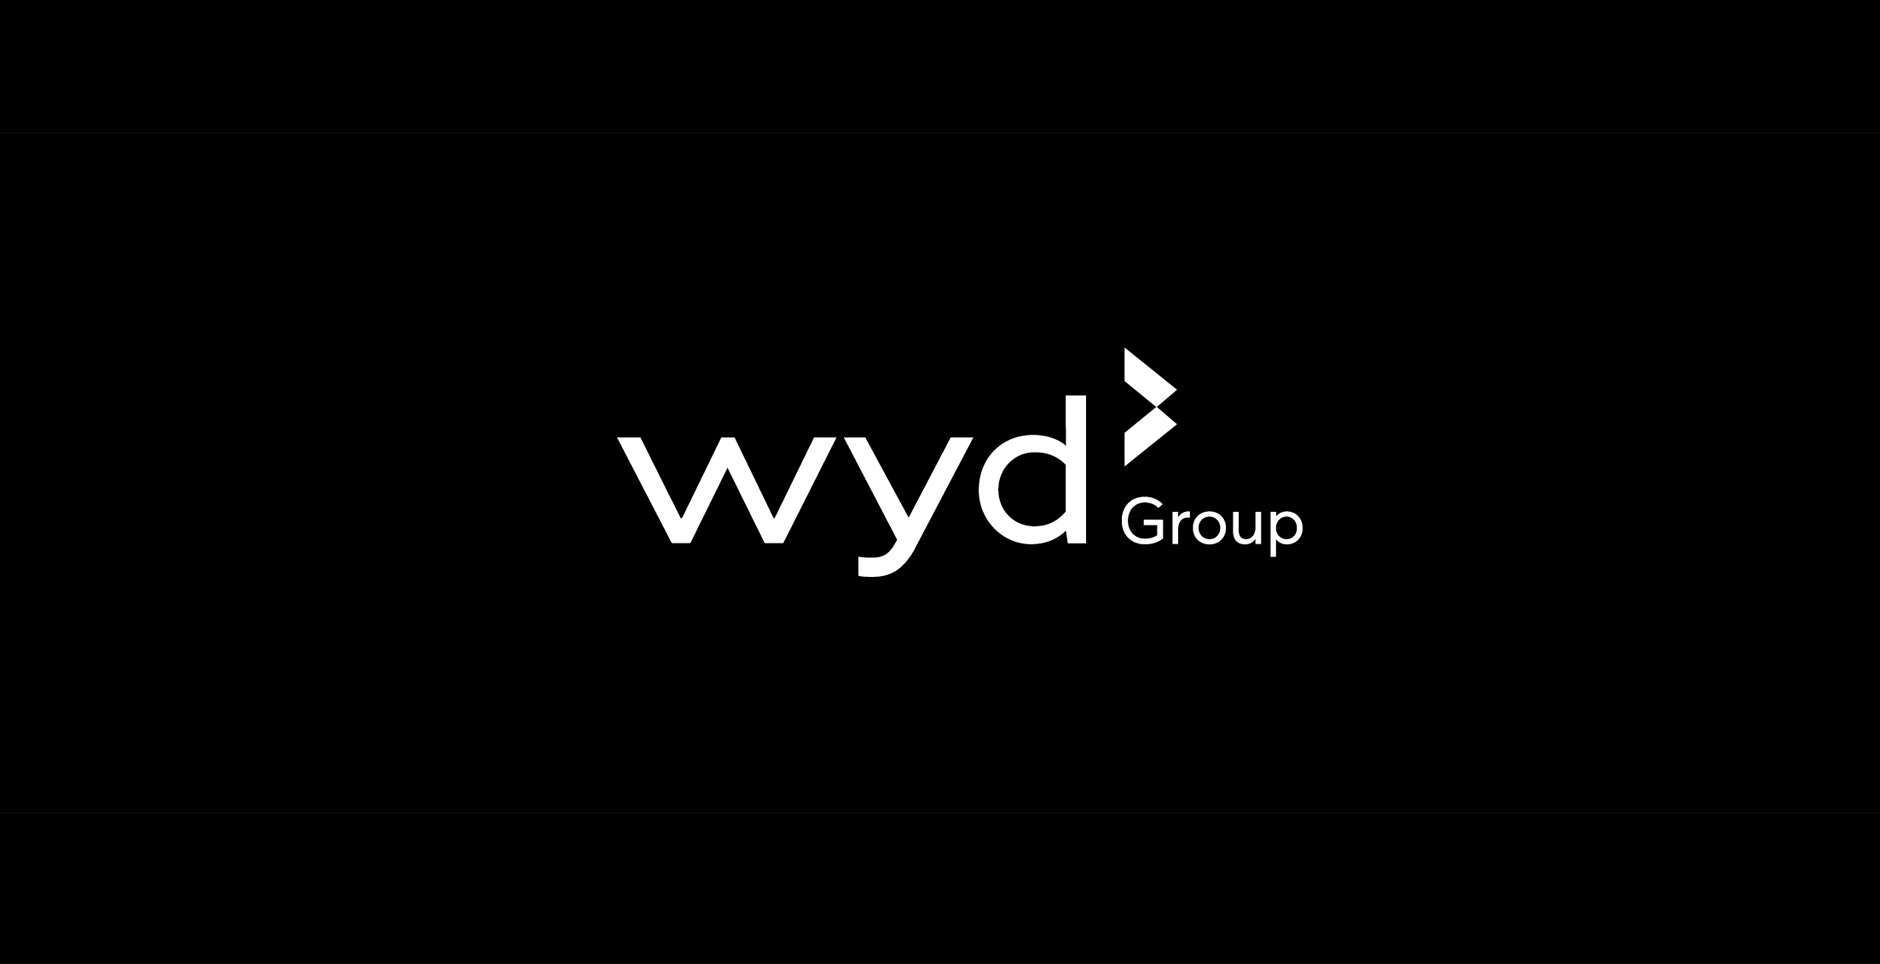 Wyd Group branding logo design